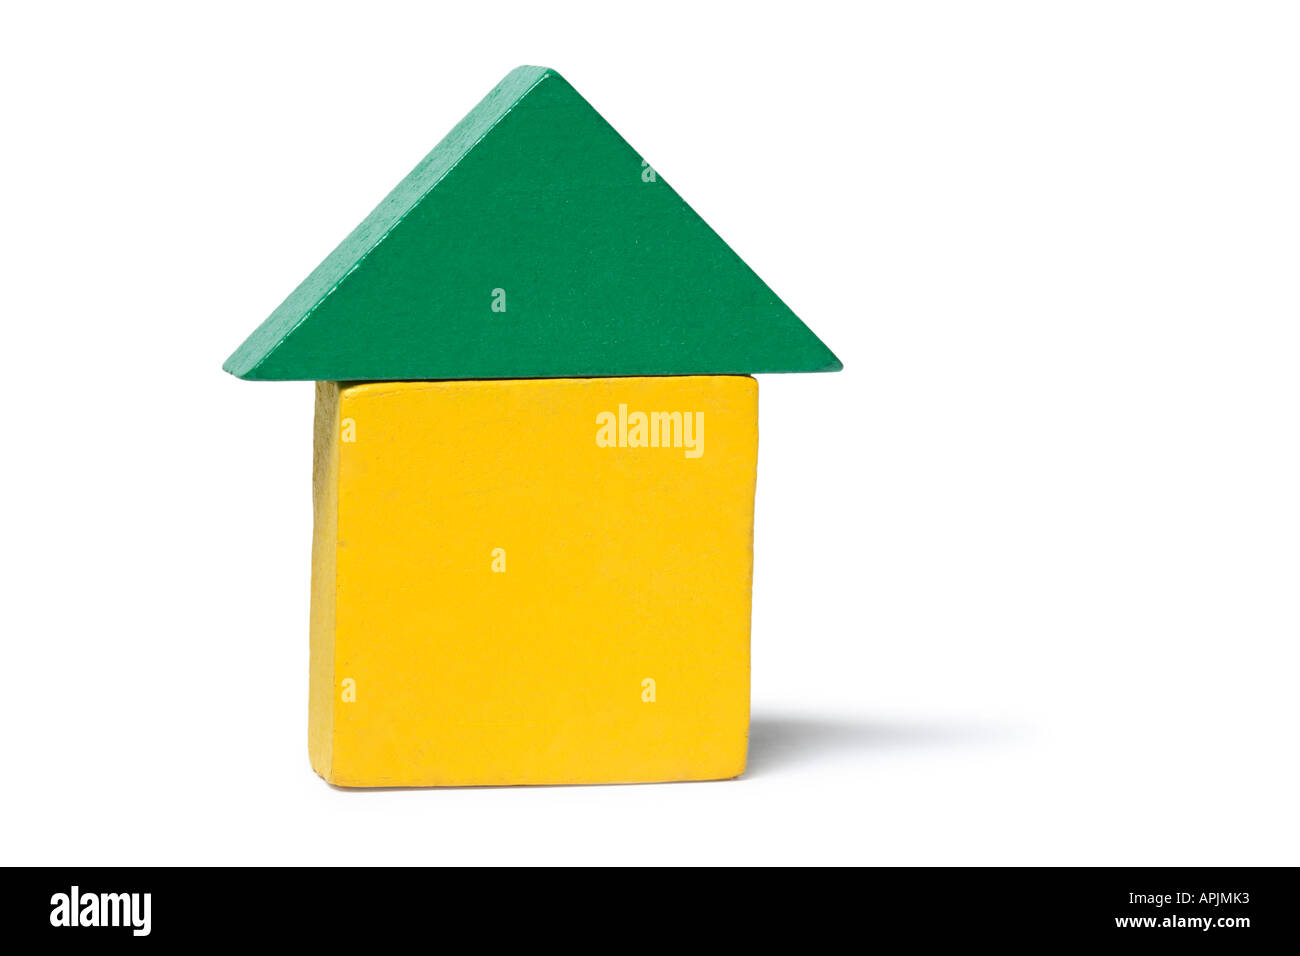 Blocks stacked up in the shape of a house. - Stock Image